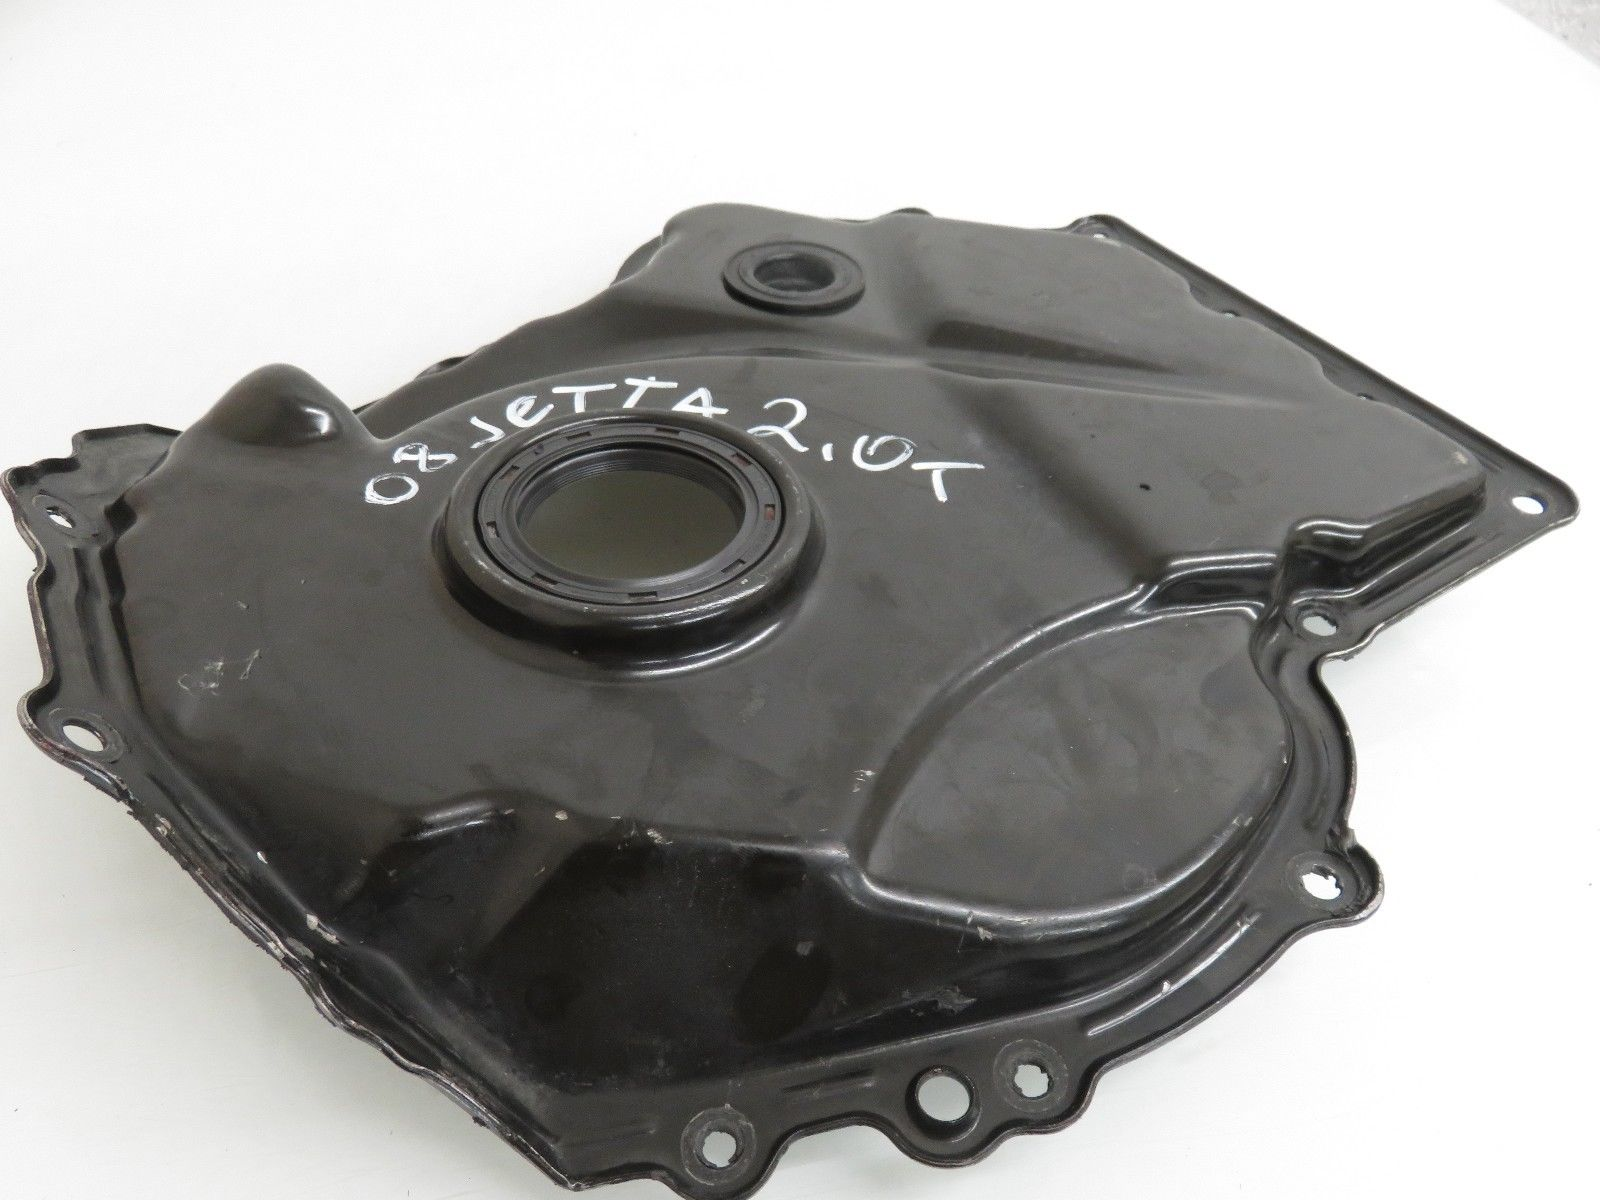 08 14 Volkswagen Jetta 20l Engine Lower Timing Chain Cover Oem Bmw 325i 06h 109 211